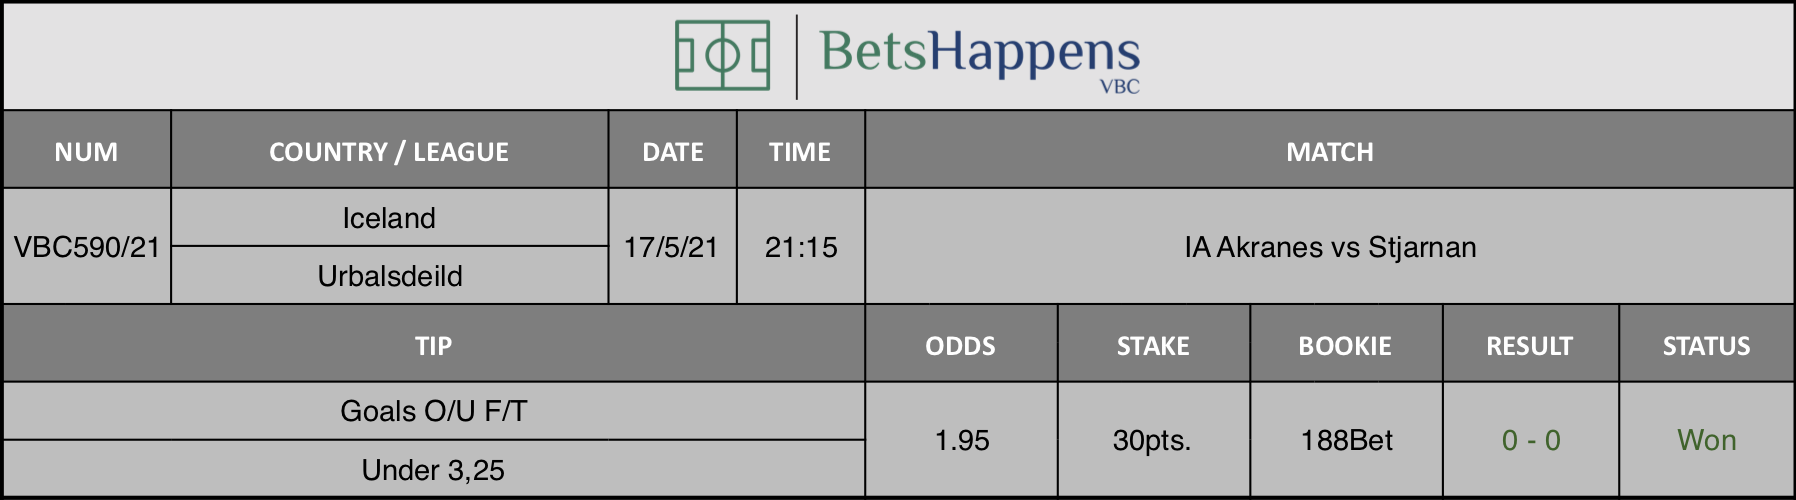 Results of our tip for the IA Akranes vs Stjarnan match where Goals O/U F/T Under 3,25 is recommended.